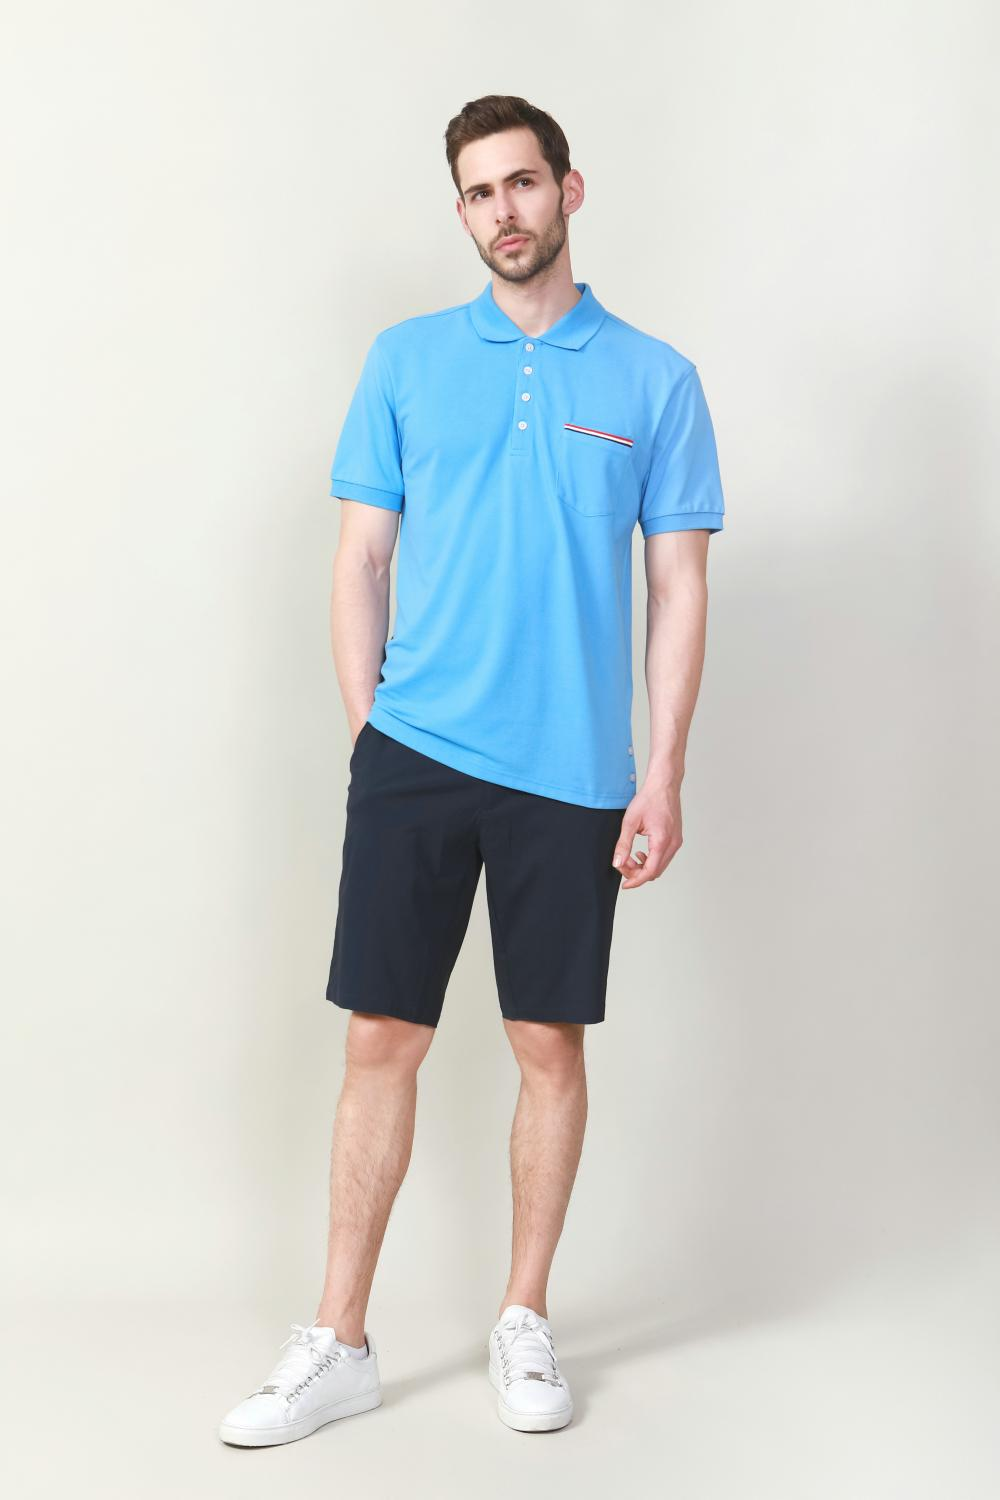 MEN'S PLAIN DYED POLO